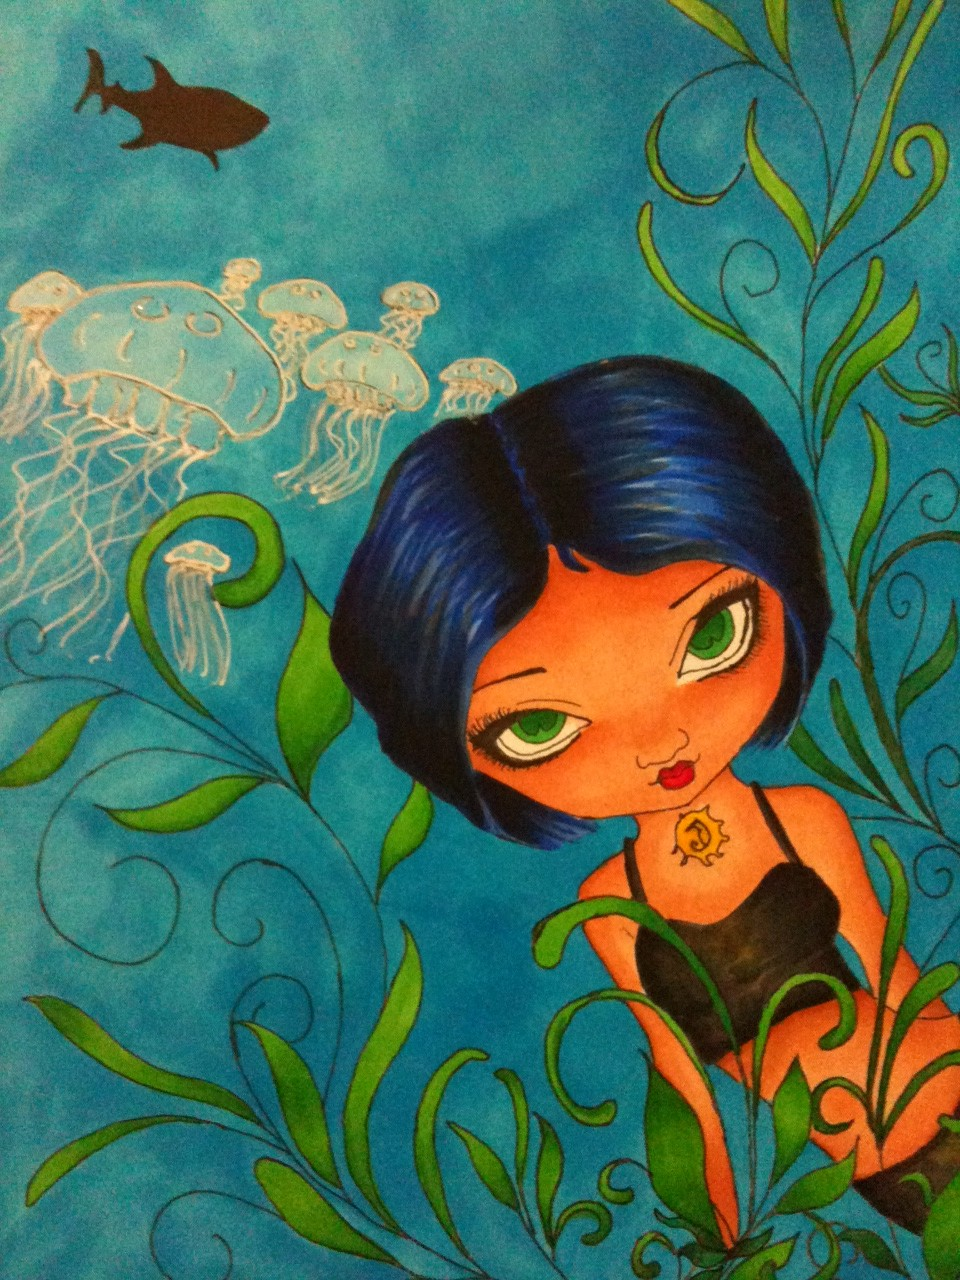 Fan art by Samantha Ling: Aluna from Above World